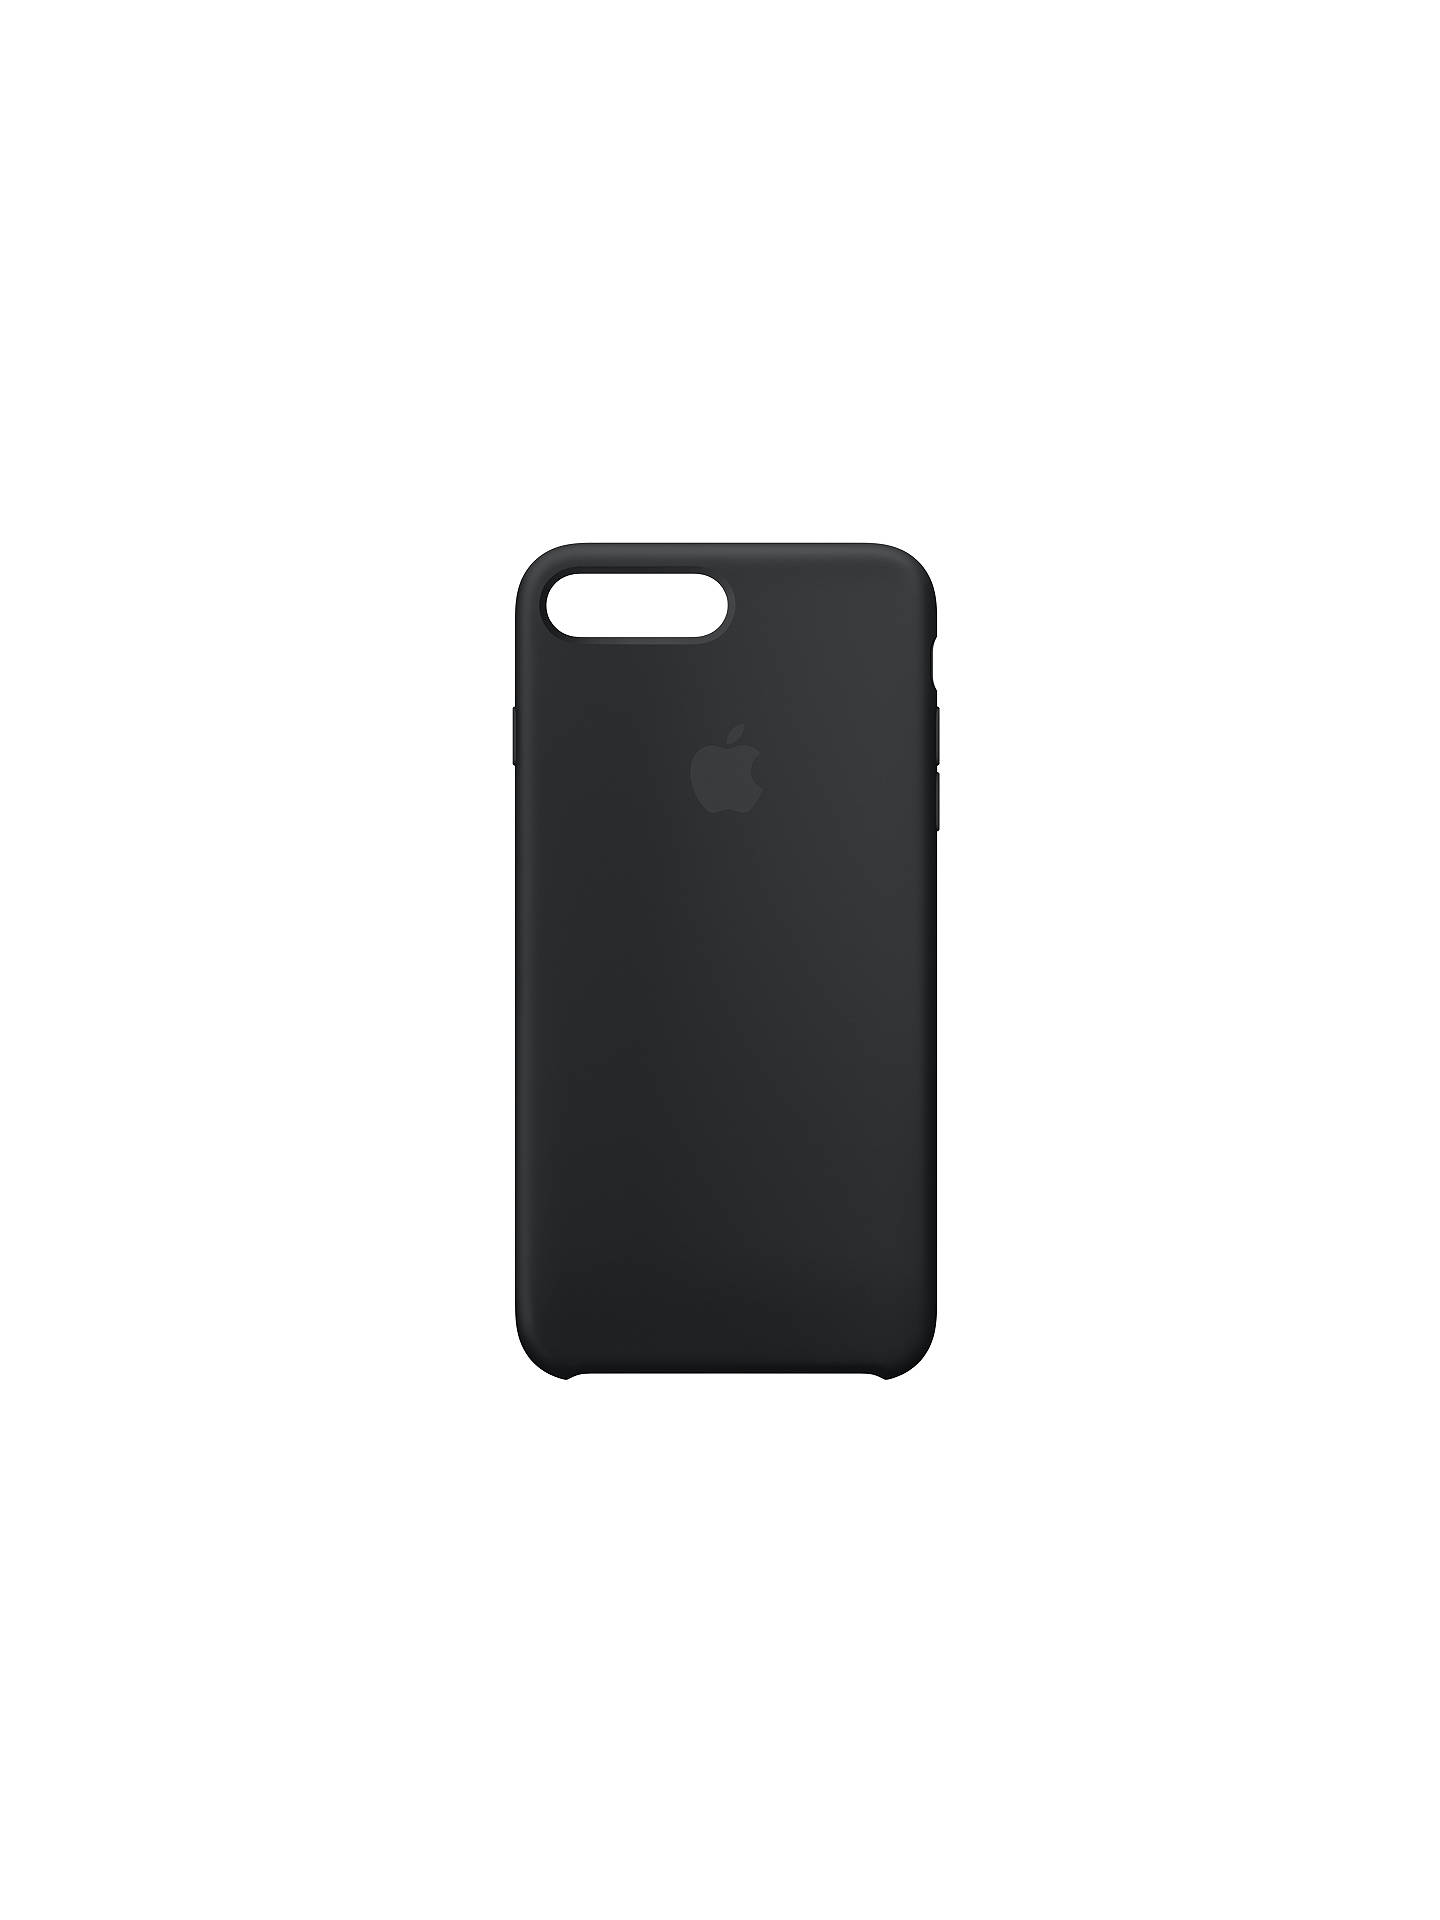 BuyApple Silicone Case for iPhone 8 Plus, Black Online at johnlewis.com